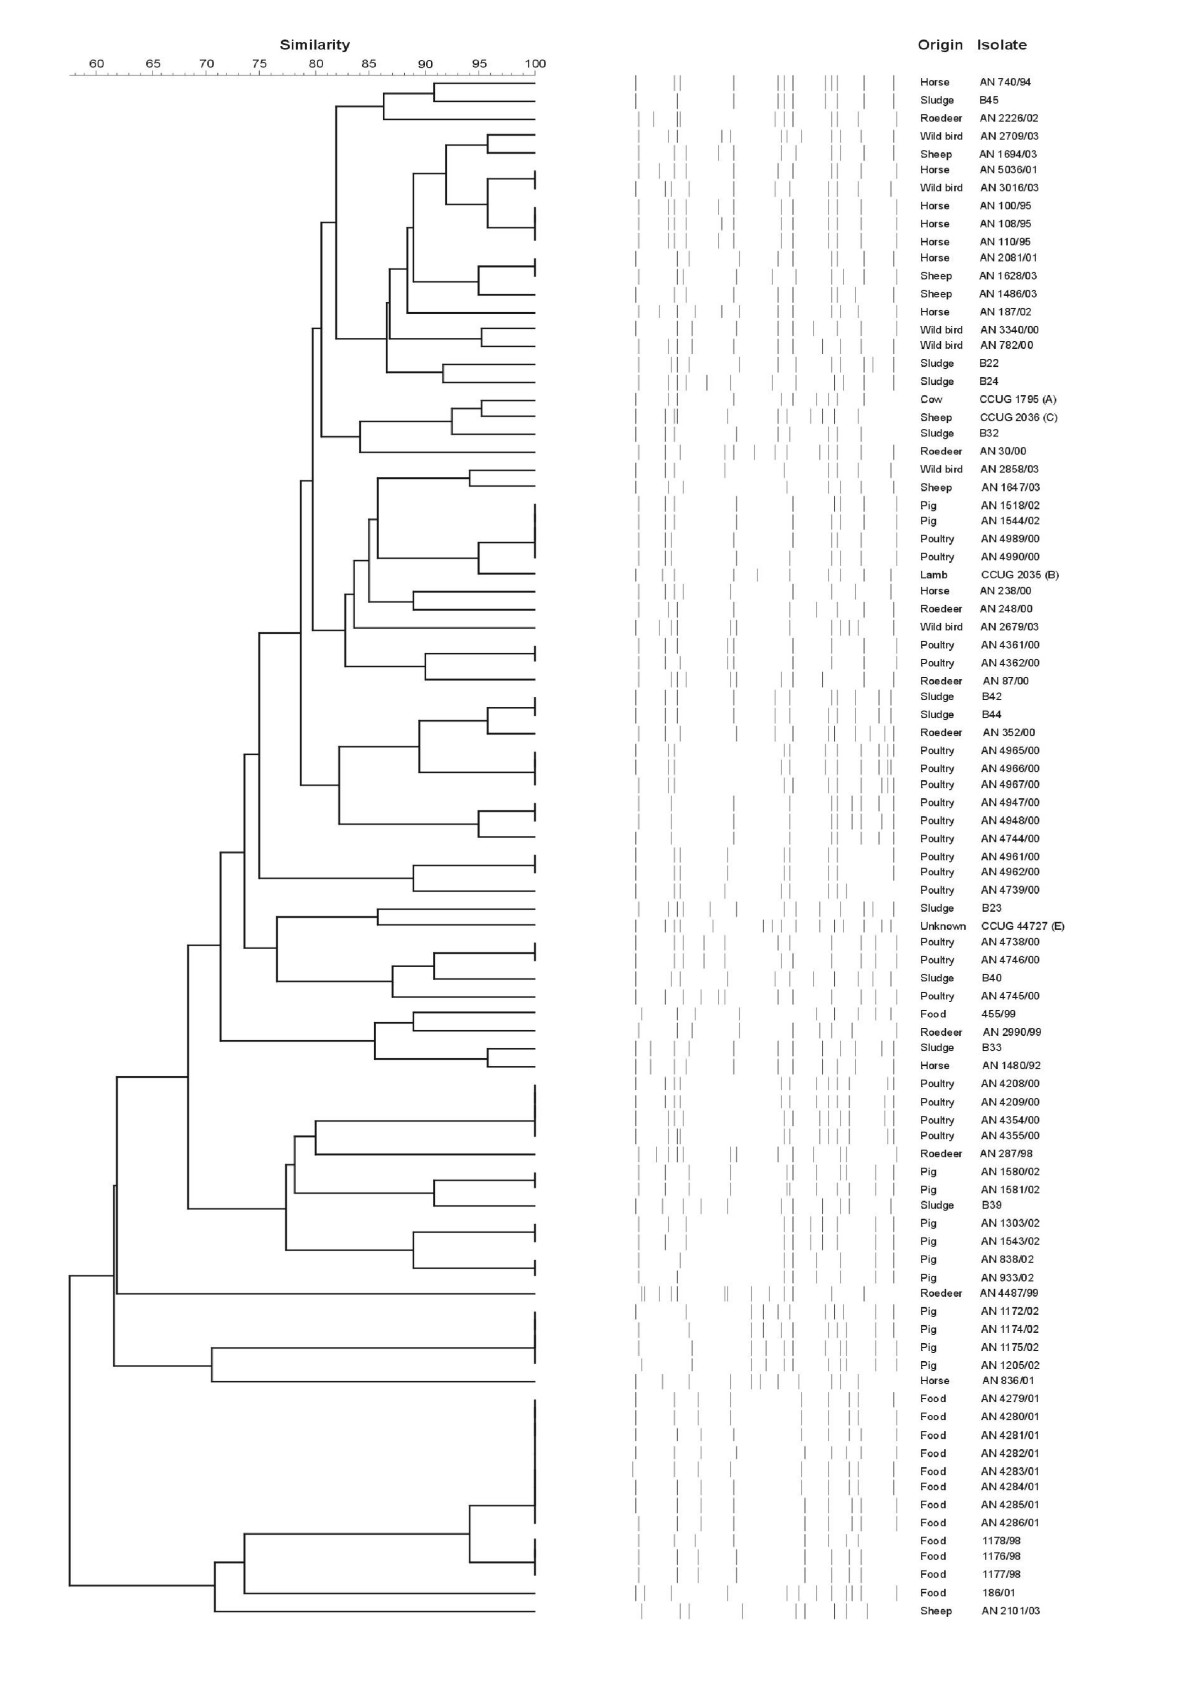 https://static-content.springer.com/image/art%3A10.1186%2F1471-2180-6-47/MediaObjects/12866_2006_Article_260_Fig1_HTML.jpg